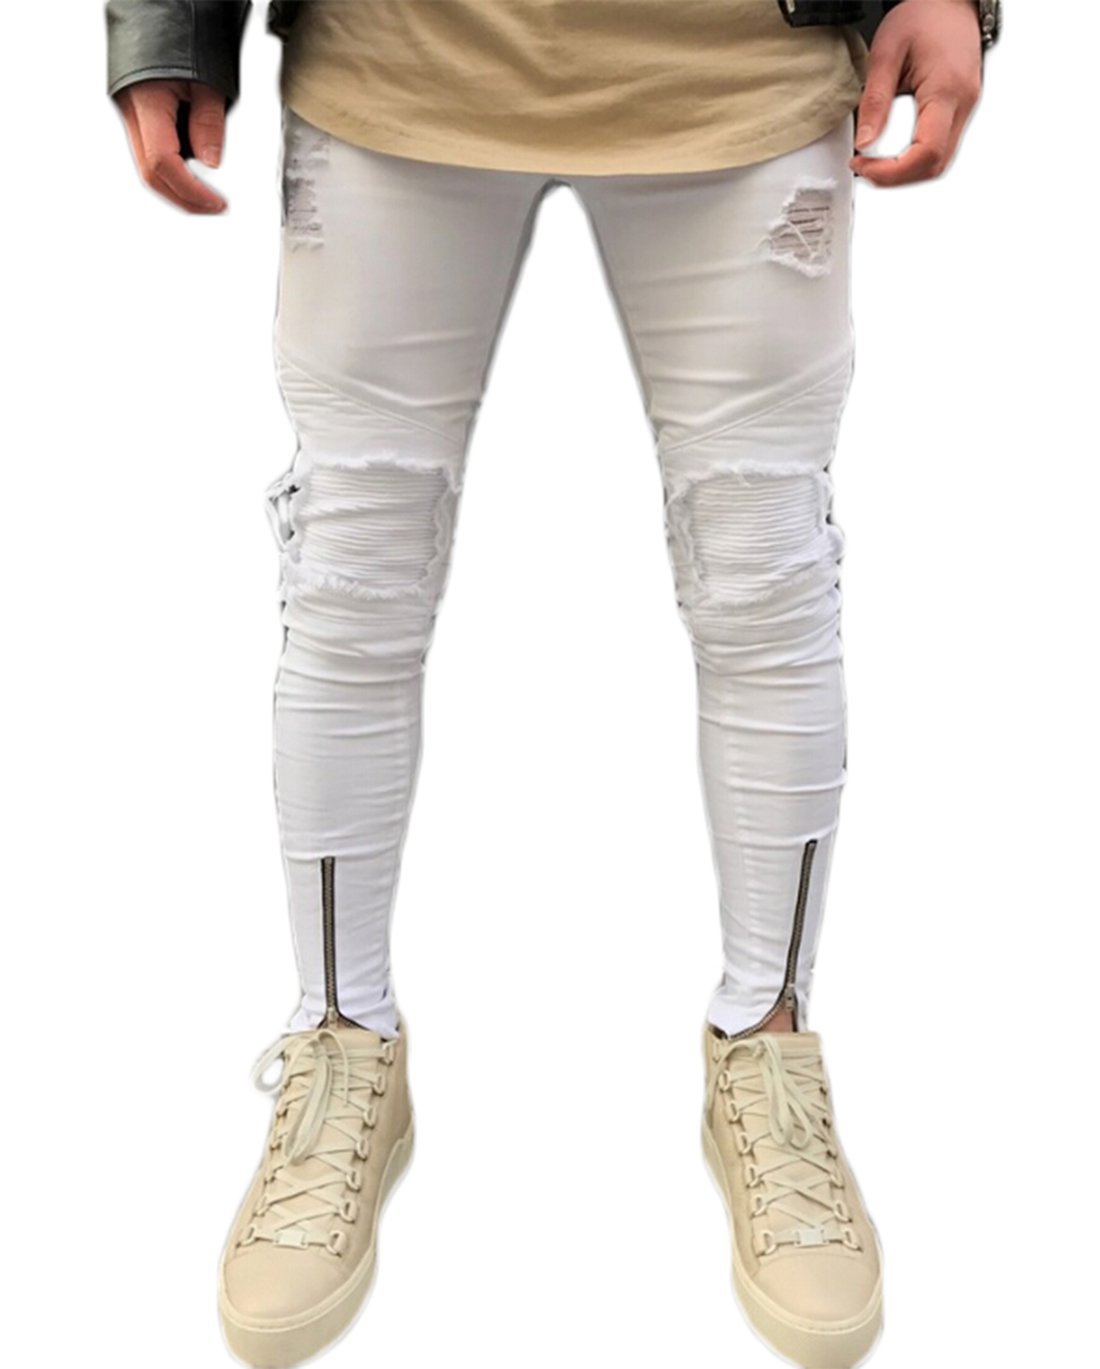 Men's Ripped Skinny Distressed Destroyed Slim Fit Stretch Zipper White Jeans Pants (32)